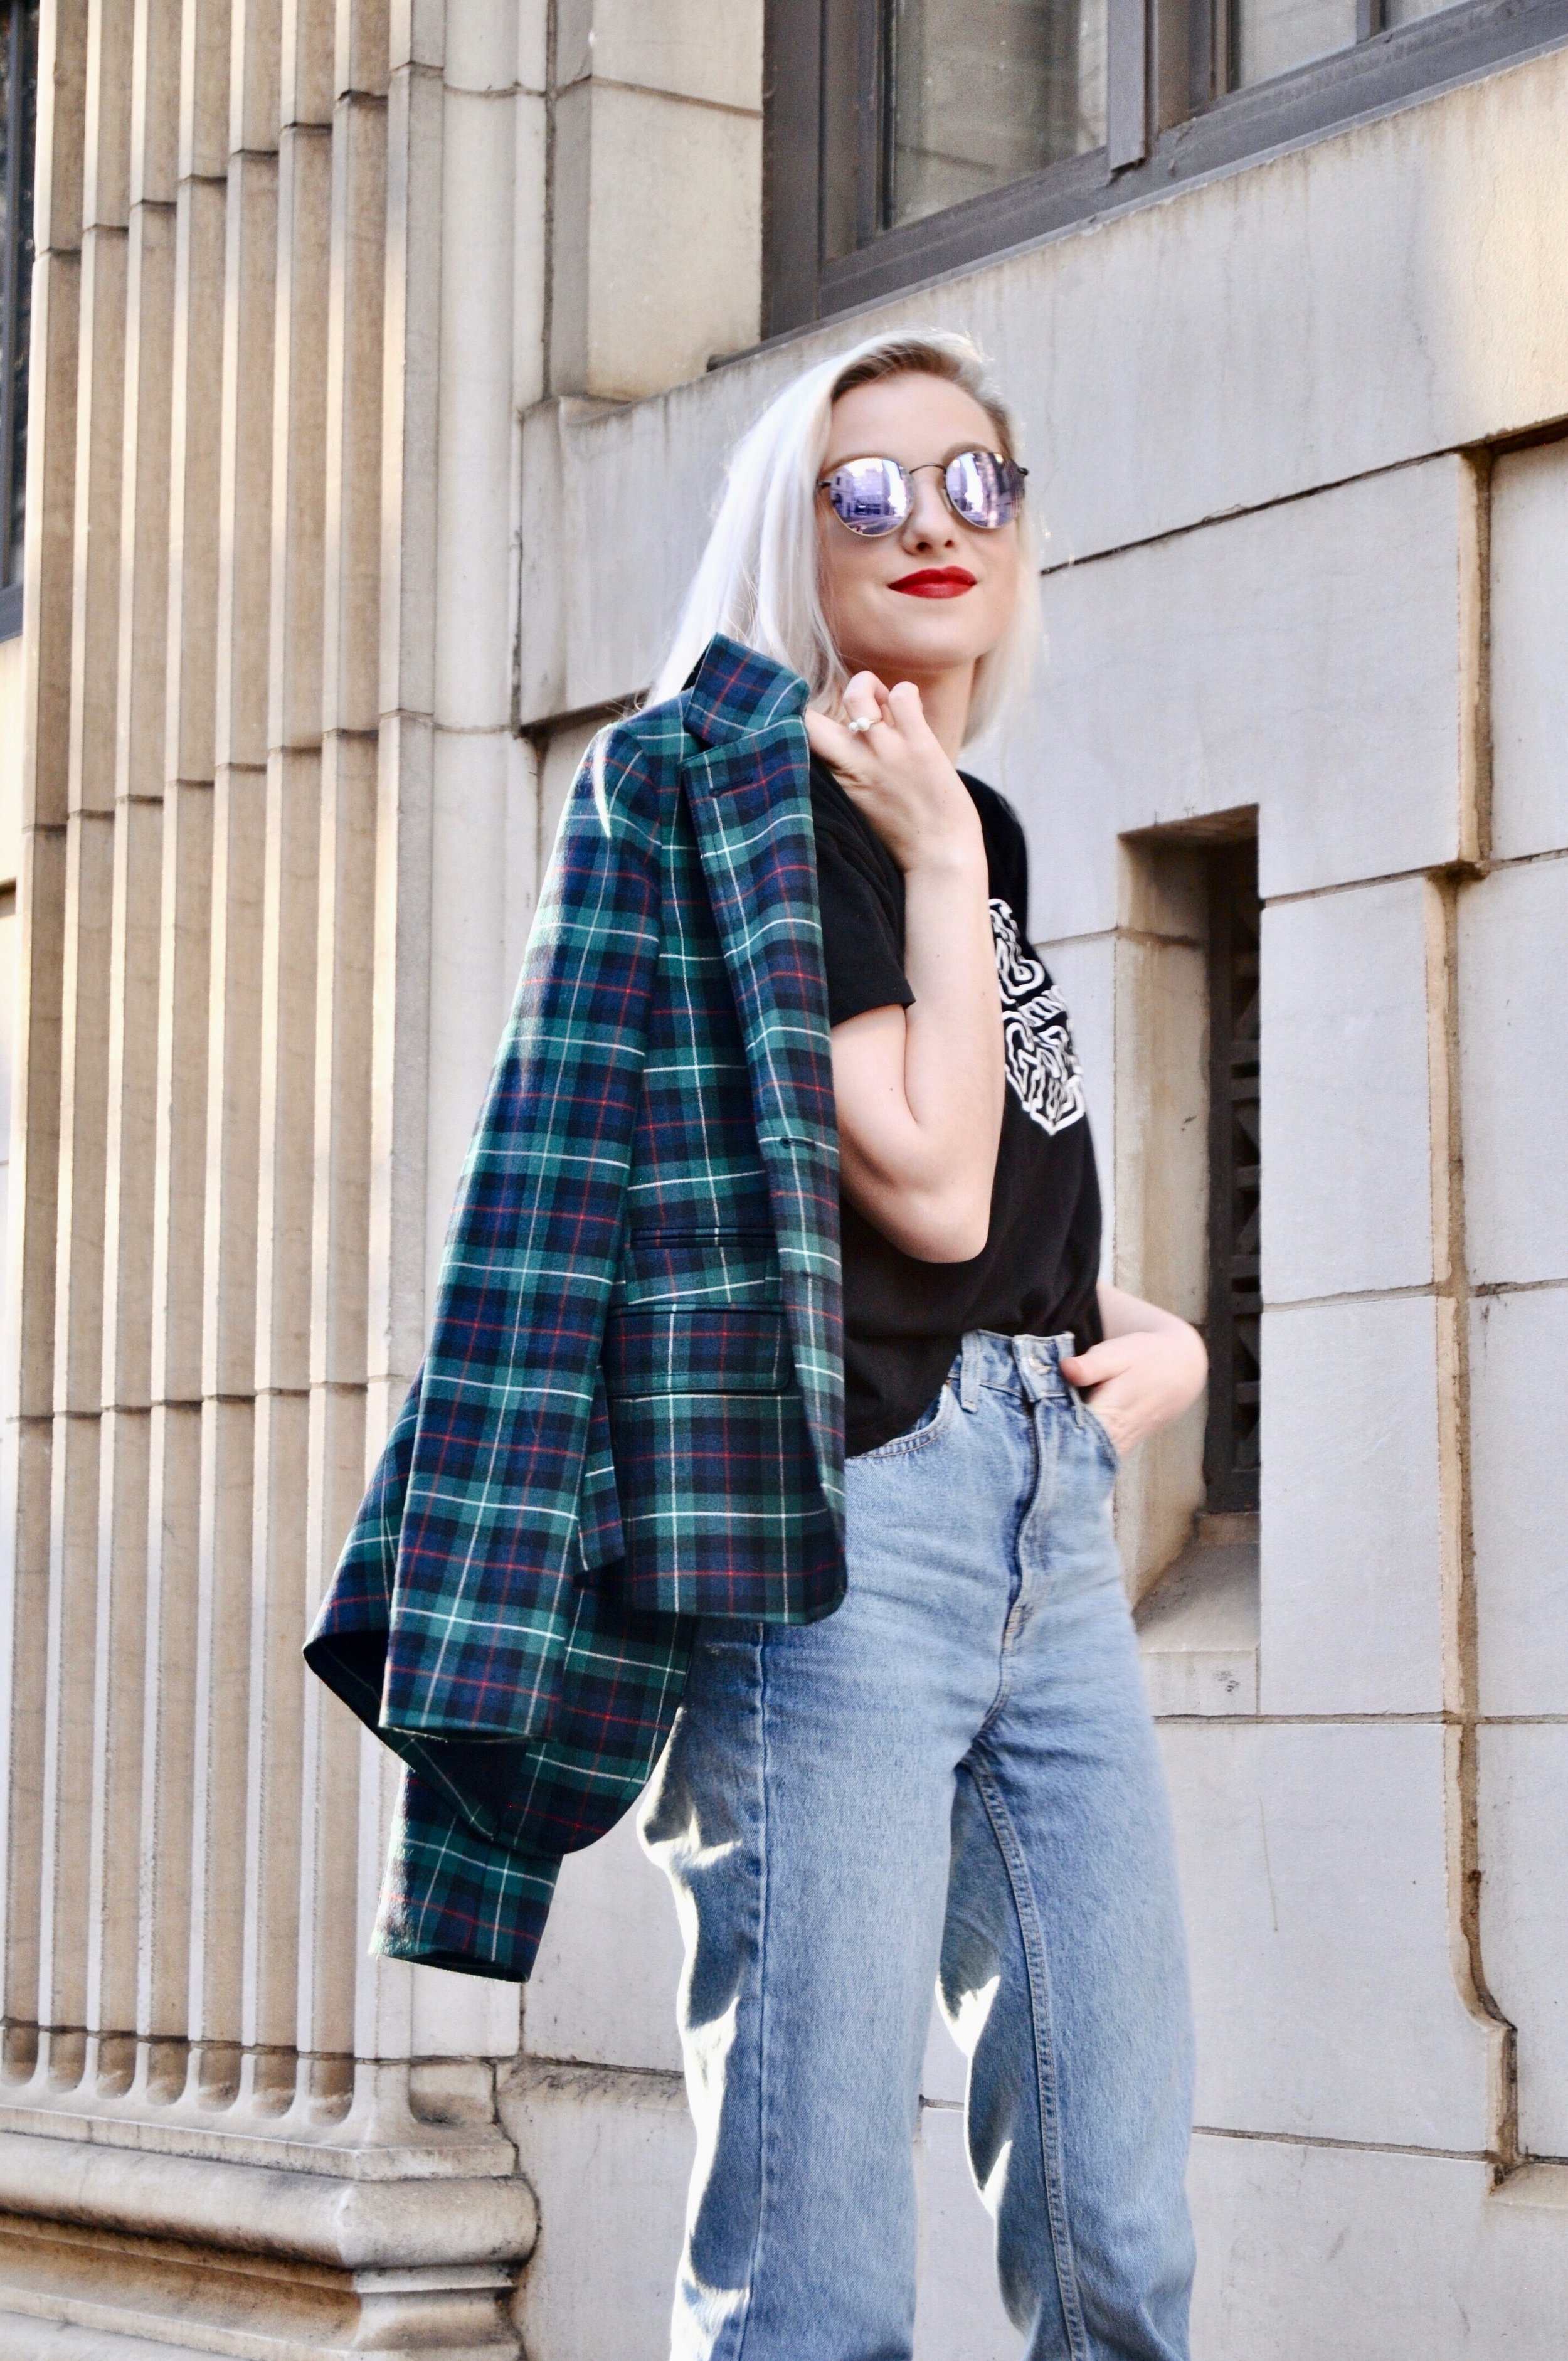 Outfit Details: Top: Pull & Bear, Blazer: J. Crew, Jeans: Topshop, Socks: Topshop, Shoes: Zara, Bag: Gucci, Sunglasses: Ray-Ban, Ring: Minimalist Jewelry